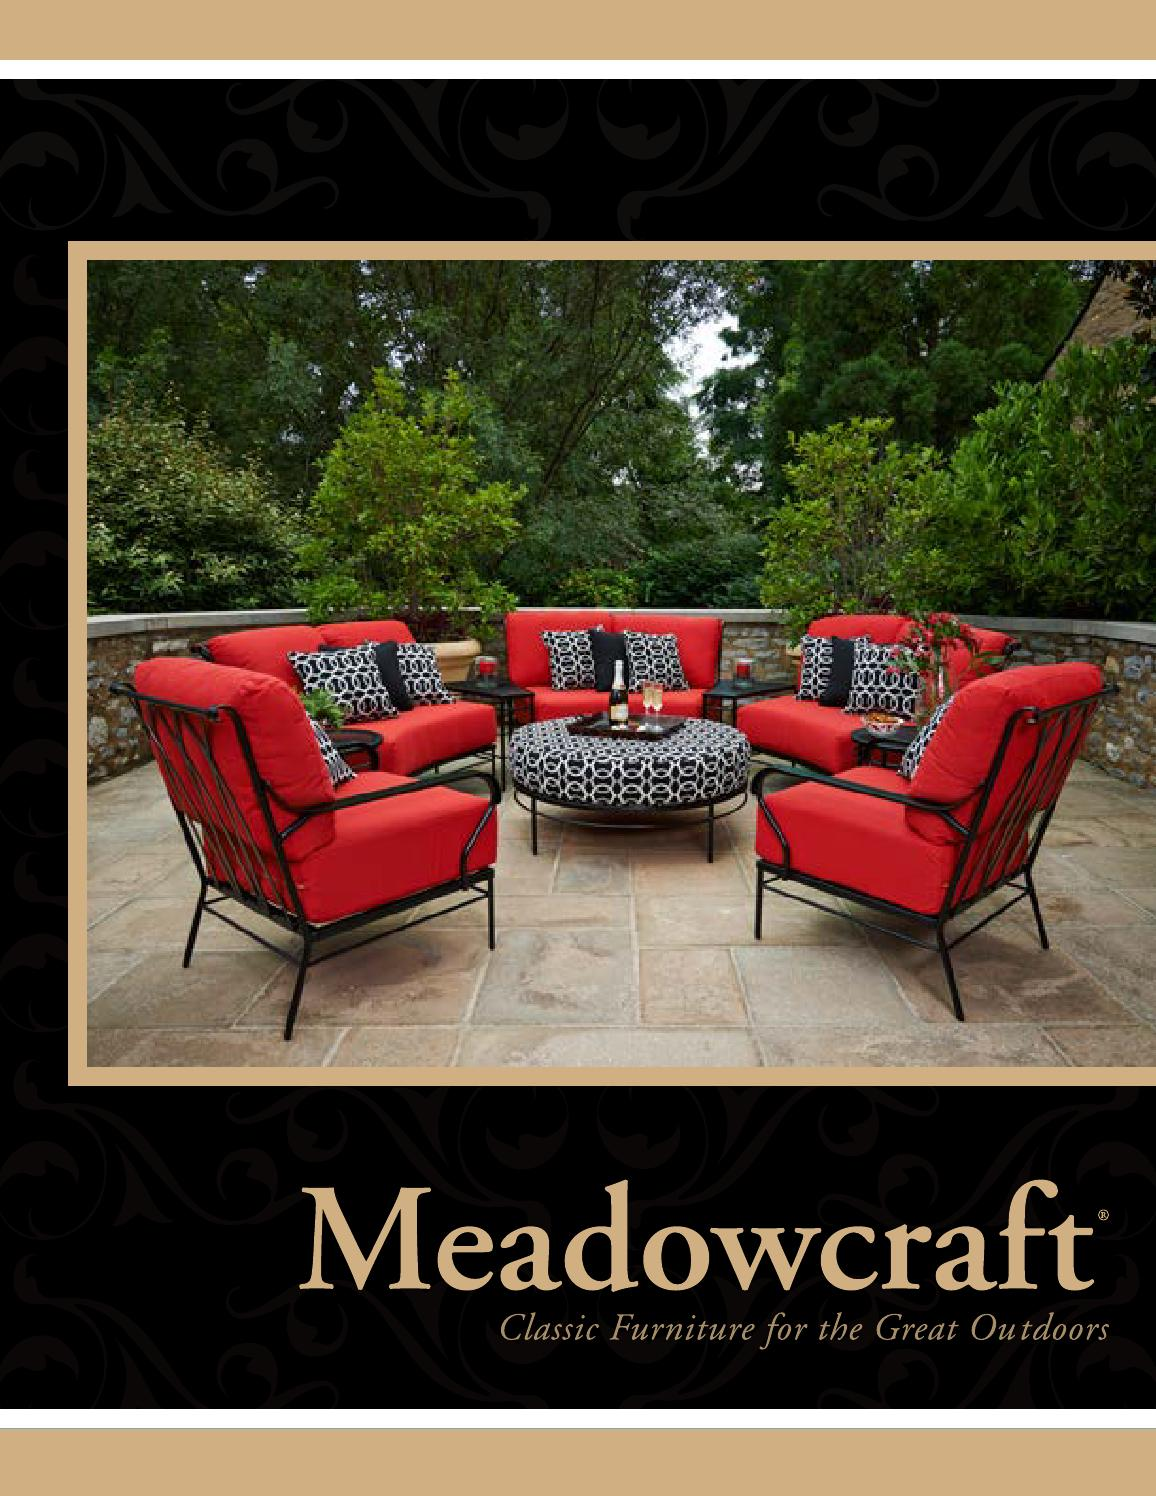 Pleasant Meadowcraft By Marx Fireplaces Lighting Issuu Pdpeps Interior Chair Design Pdpepsorg